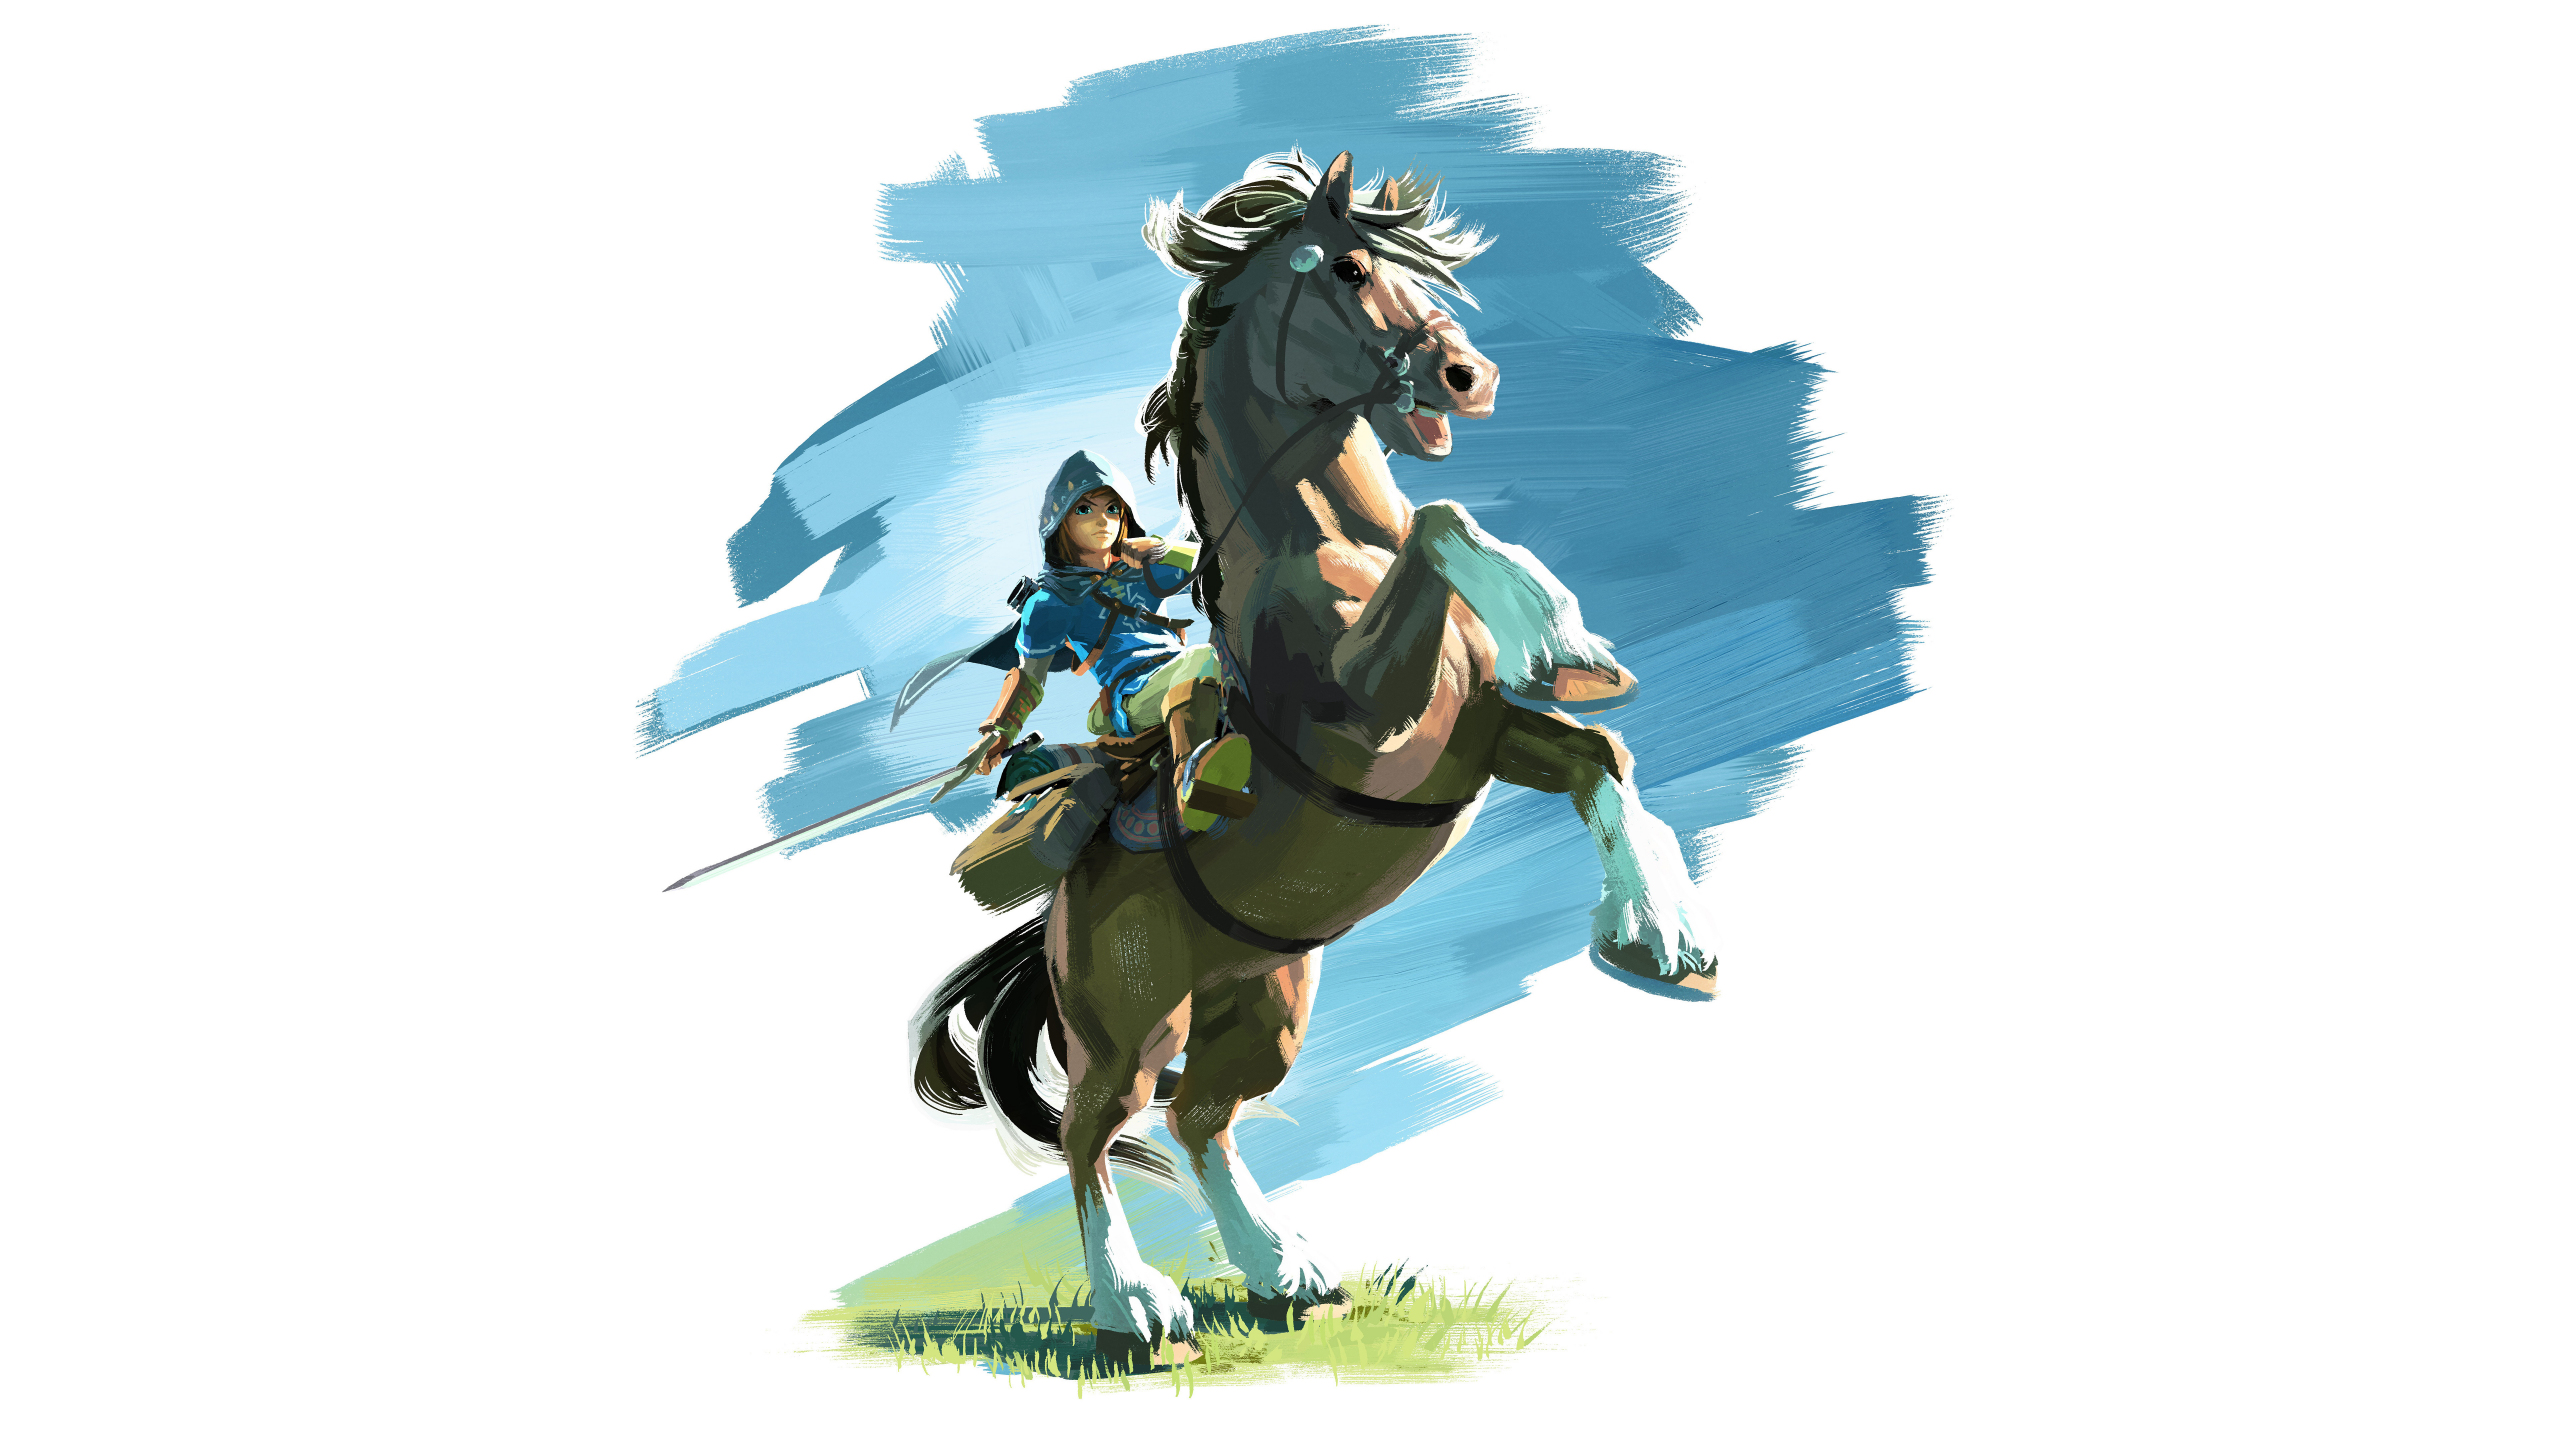 Download 2560x1440 Wallpaper The Legend Of Zelda Breath Of The Wild Video Game Horse Ride Dual Wide Widescreen 16 9 Widescreen 2560x1440 Hd Image Background 1824